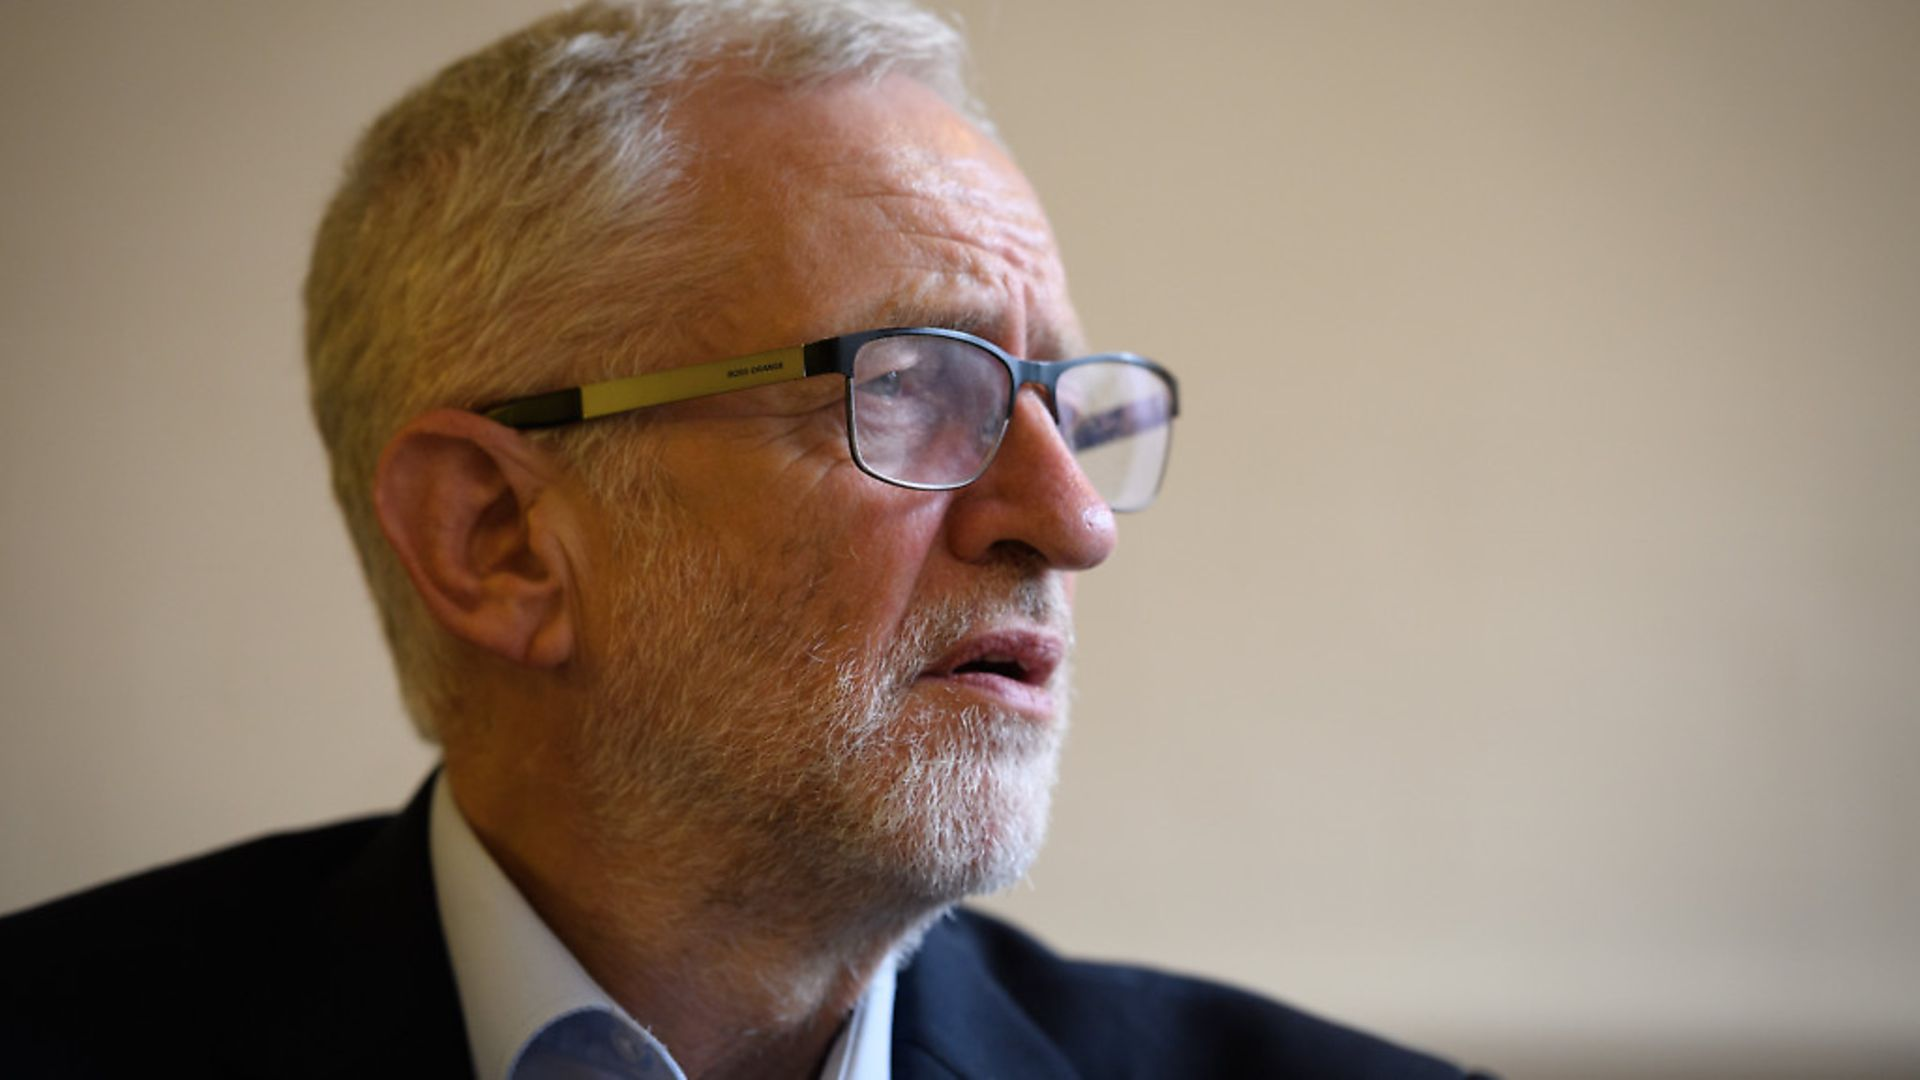 Labour Party leader Jeremy Corbyn. (Photo by Leon Neal/Getty Images) - Credit: Getty Images